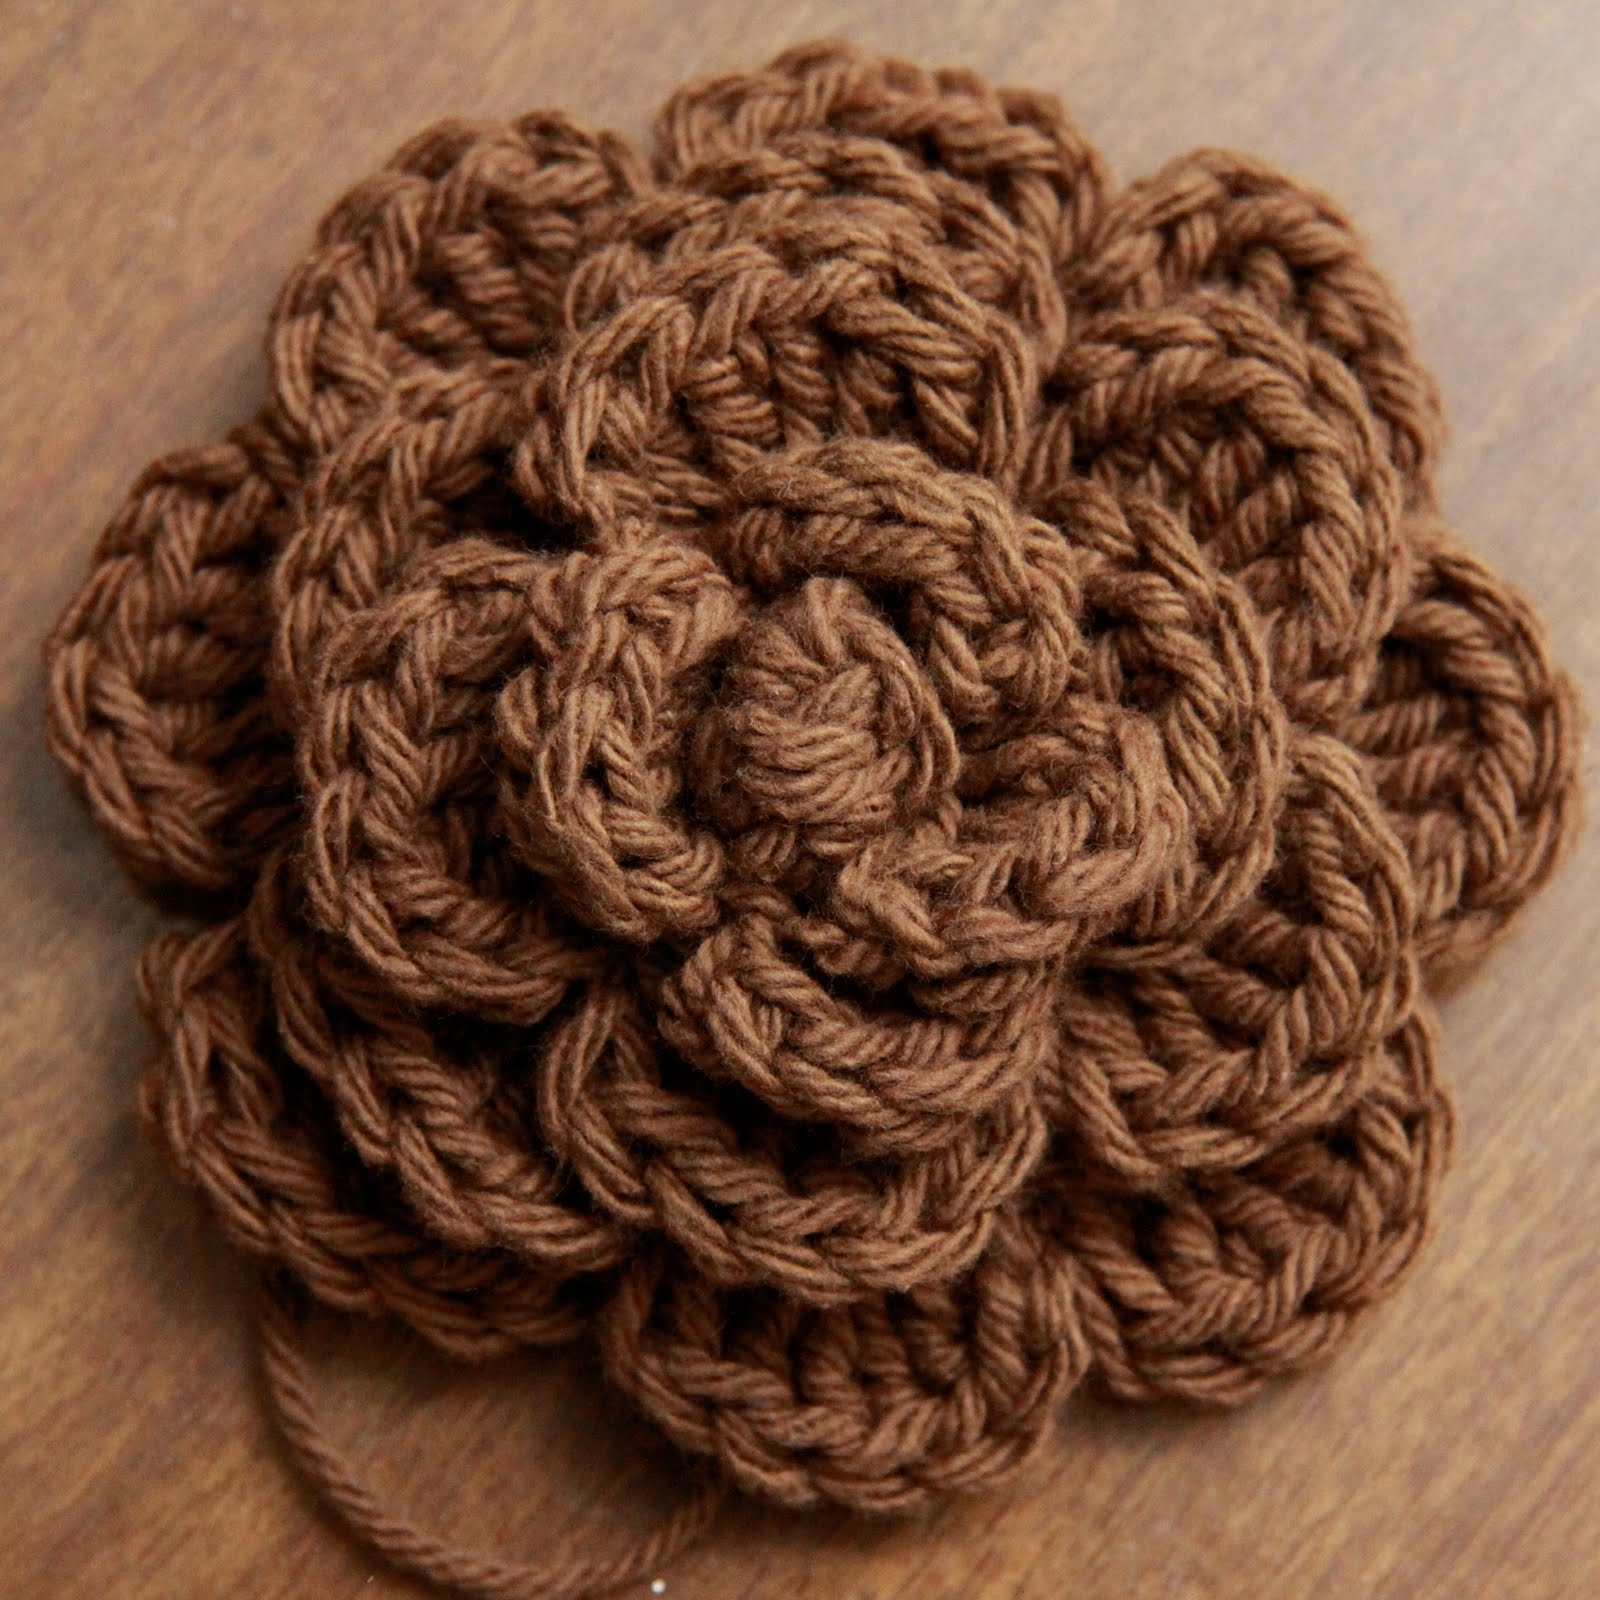 Crochet Hair Tutorial : Crochet Hair Accessories